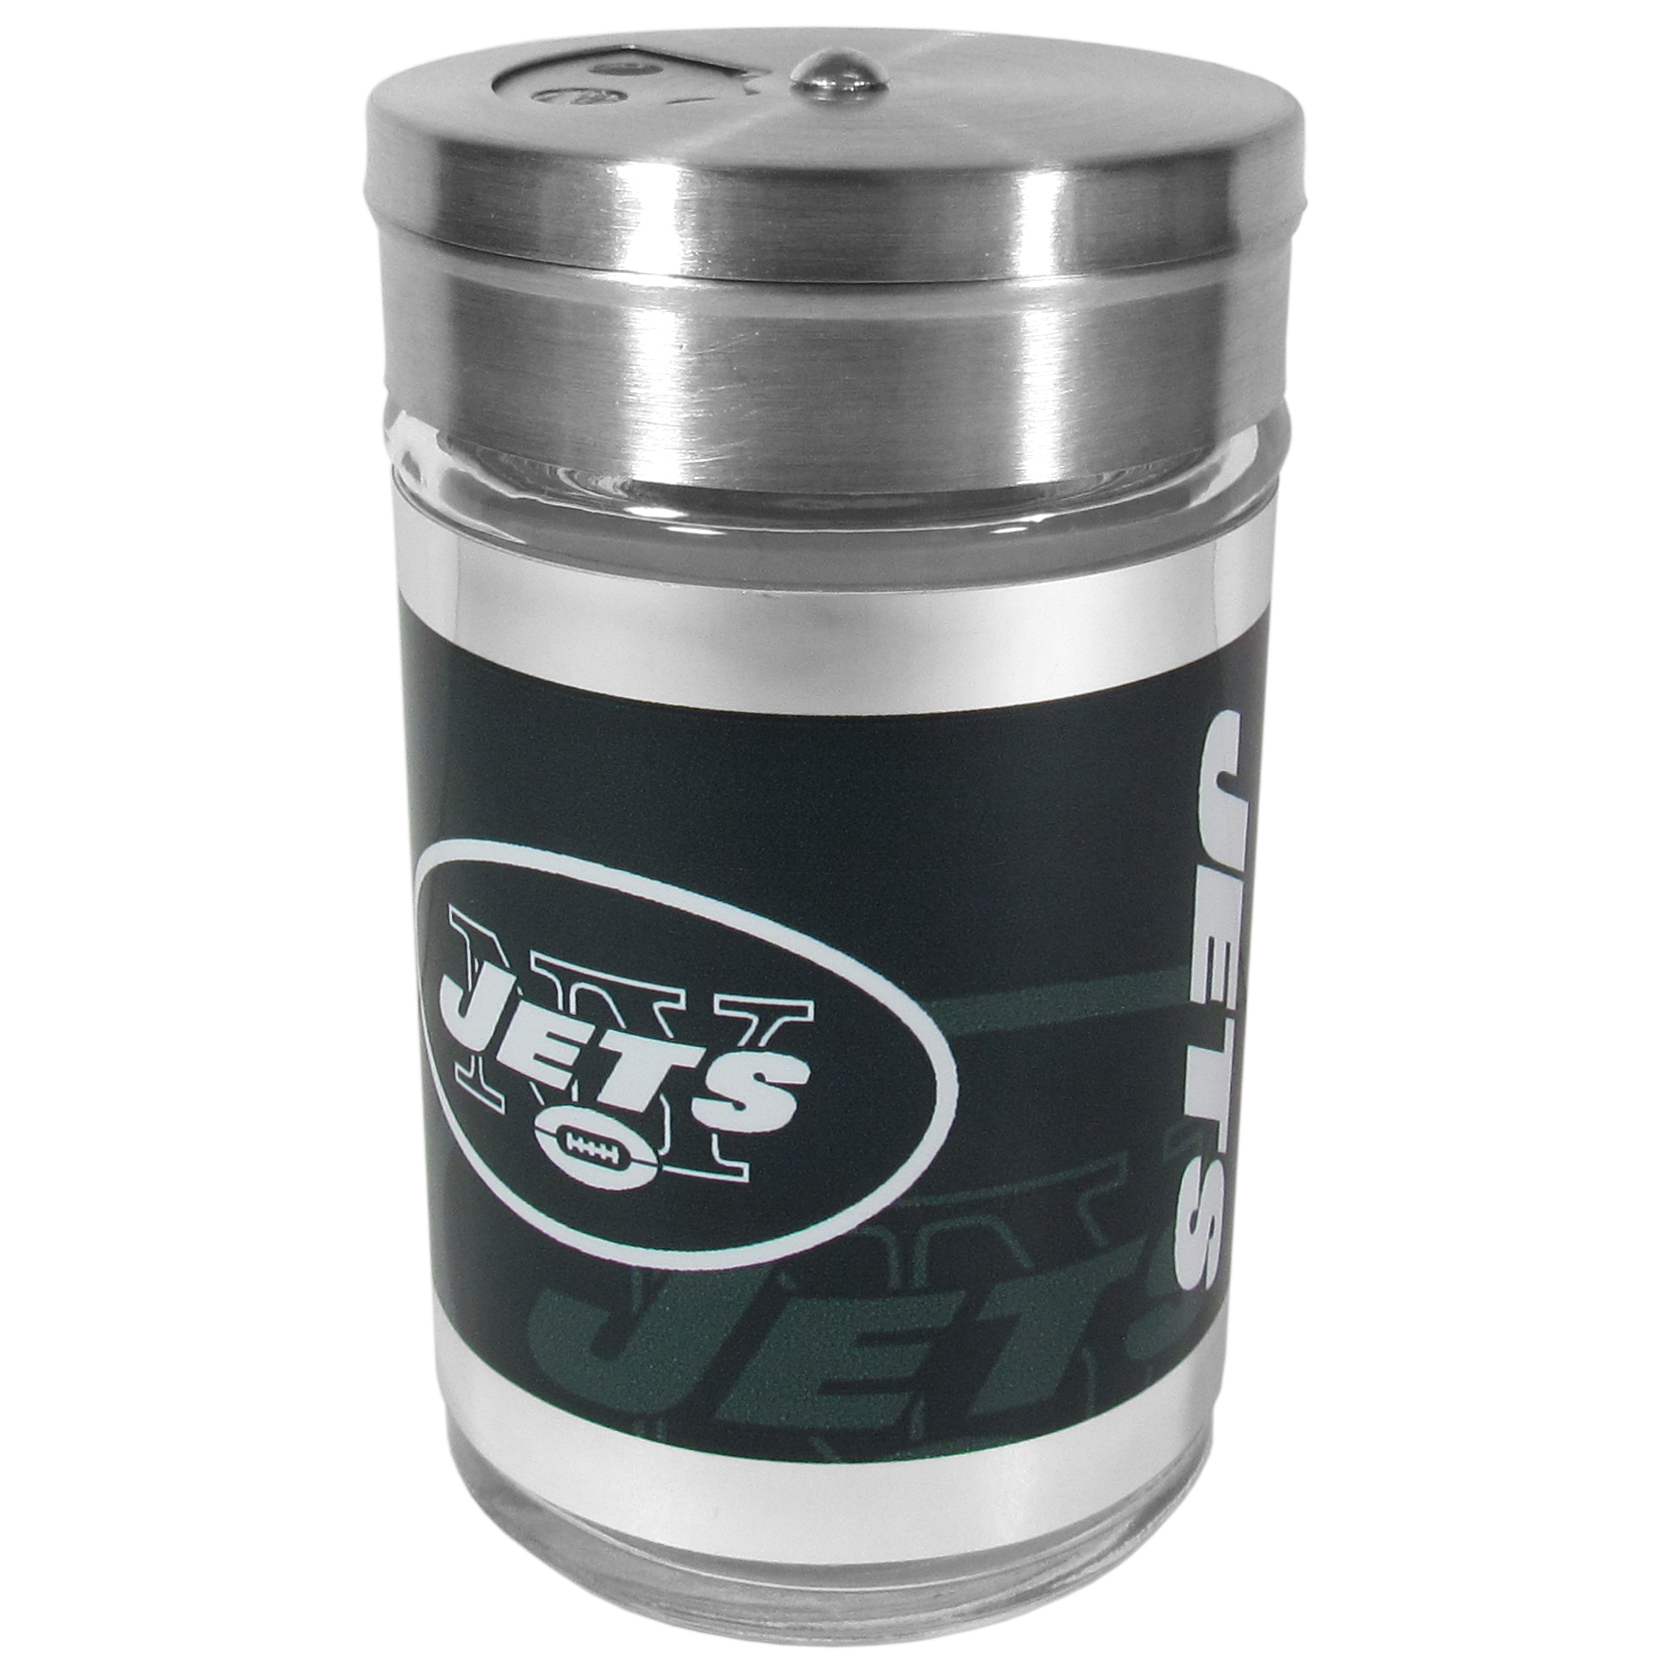 New York Jets Tailgater Season Shakers - Spice it up with our New York Jets tailgater season shakers! This compact shaker is 2 inch tall with a twist top that closes off the holes at the top making it perfect for travel preventing those messy spills. The shaker has wide holes perfect for keeping your pepper seeds or cheese toppings. The bright team graphics will make you the envy of the other fans while you are grilling up your tailgating goodies.